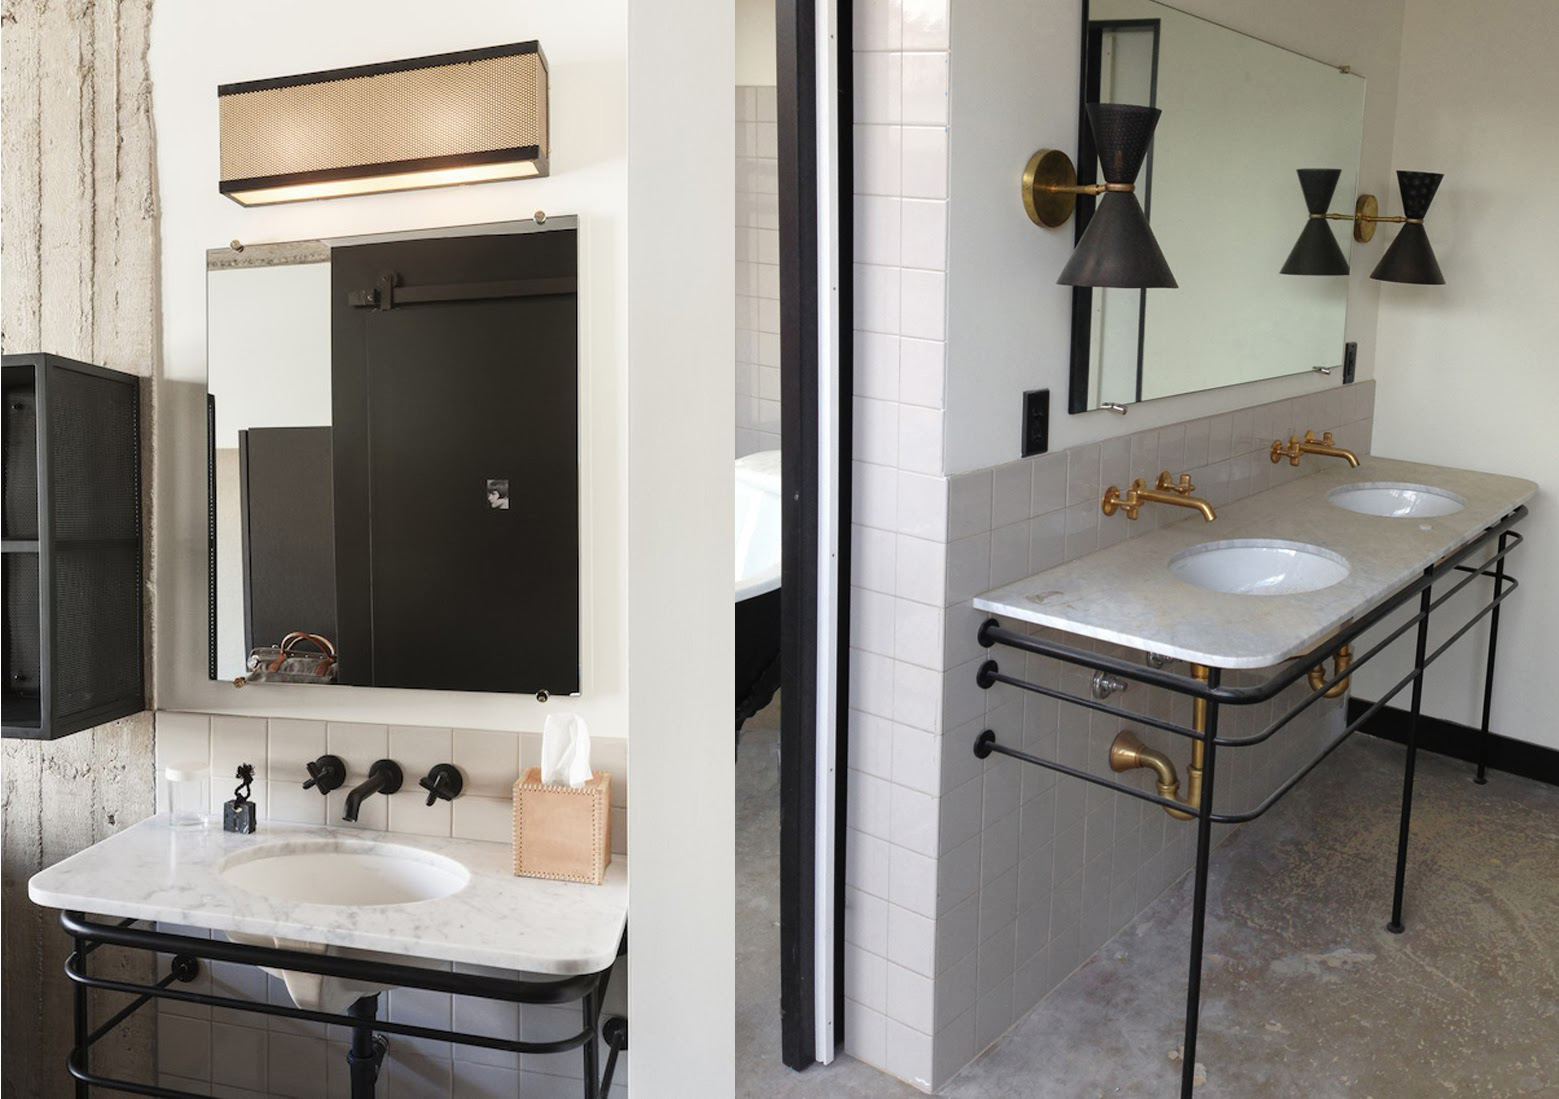 guest-room-bathroom-at-ace-hotel-downtown-los-angeles-via-kishani-perera-blog.jpg